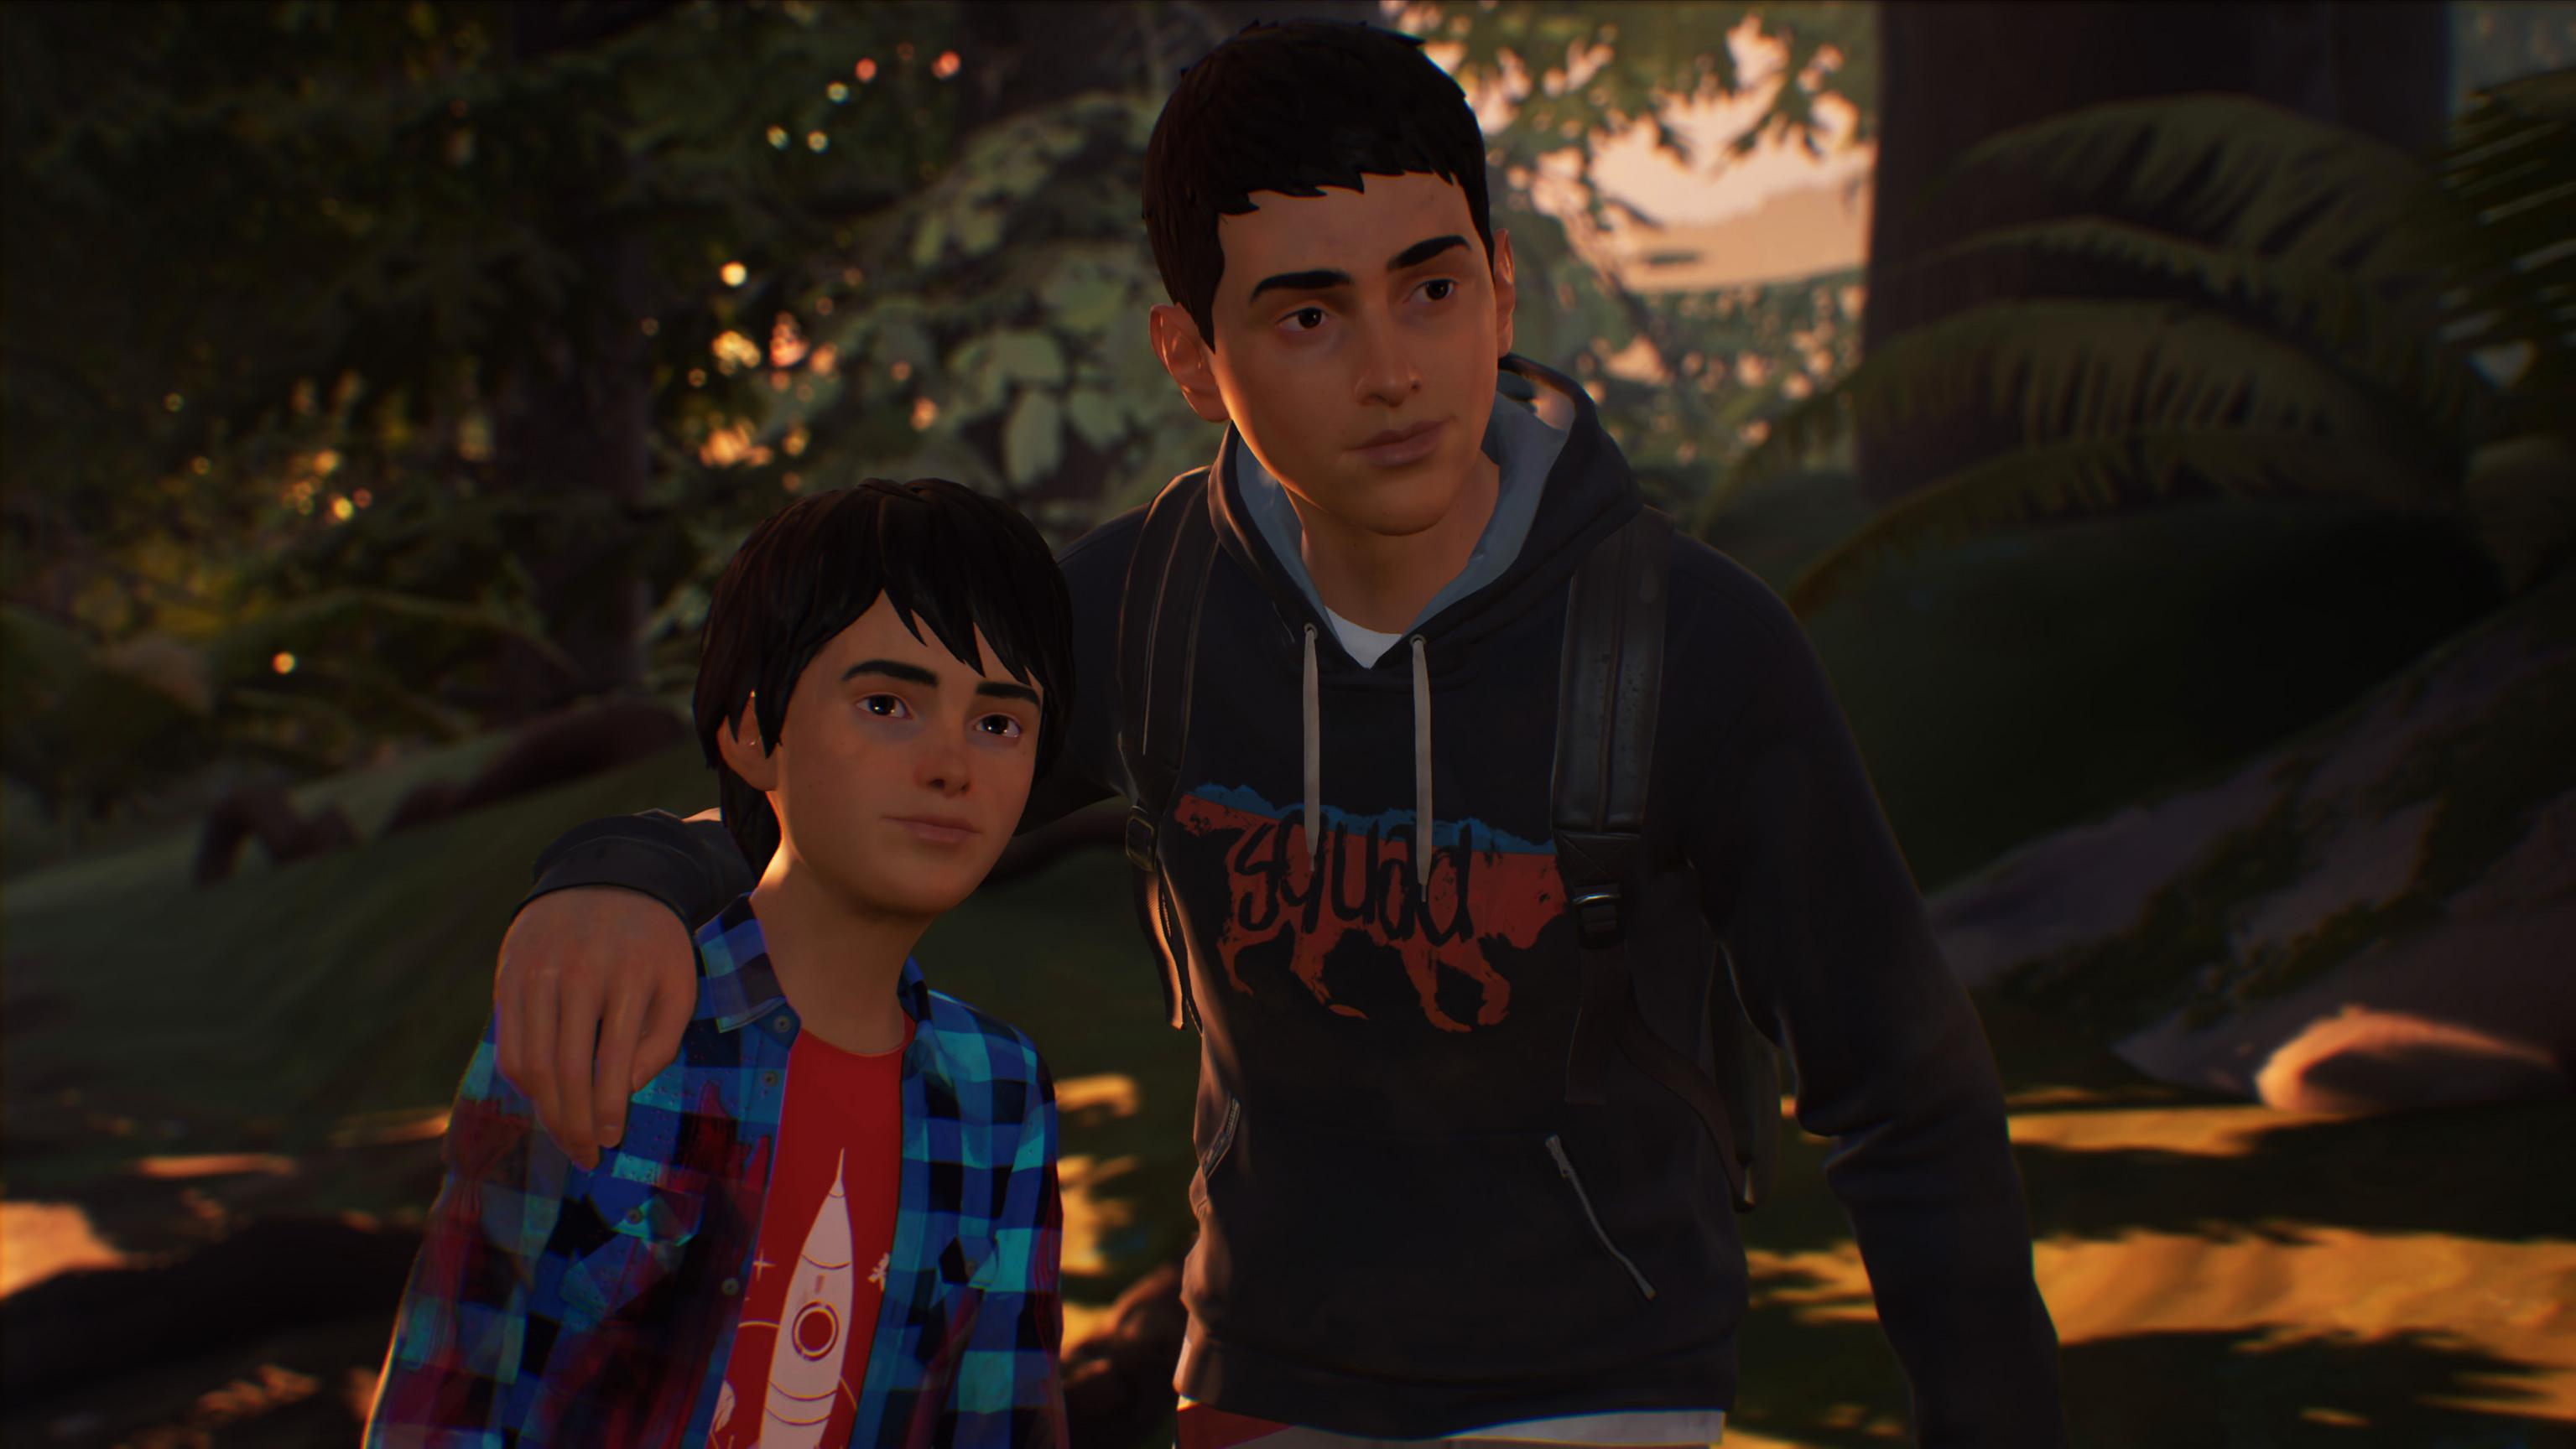 Action, Action & Adventure, adventure, Deck Nine Games, DONTNOD Entertainment, episodic, Life is Strange, Life Is Strange 2, PS4, PS4 Review, Square Enix, Story Driven, Story Rich, Xbox One, Xbox One Review